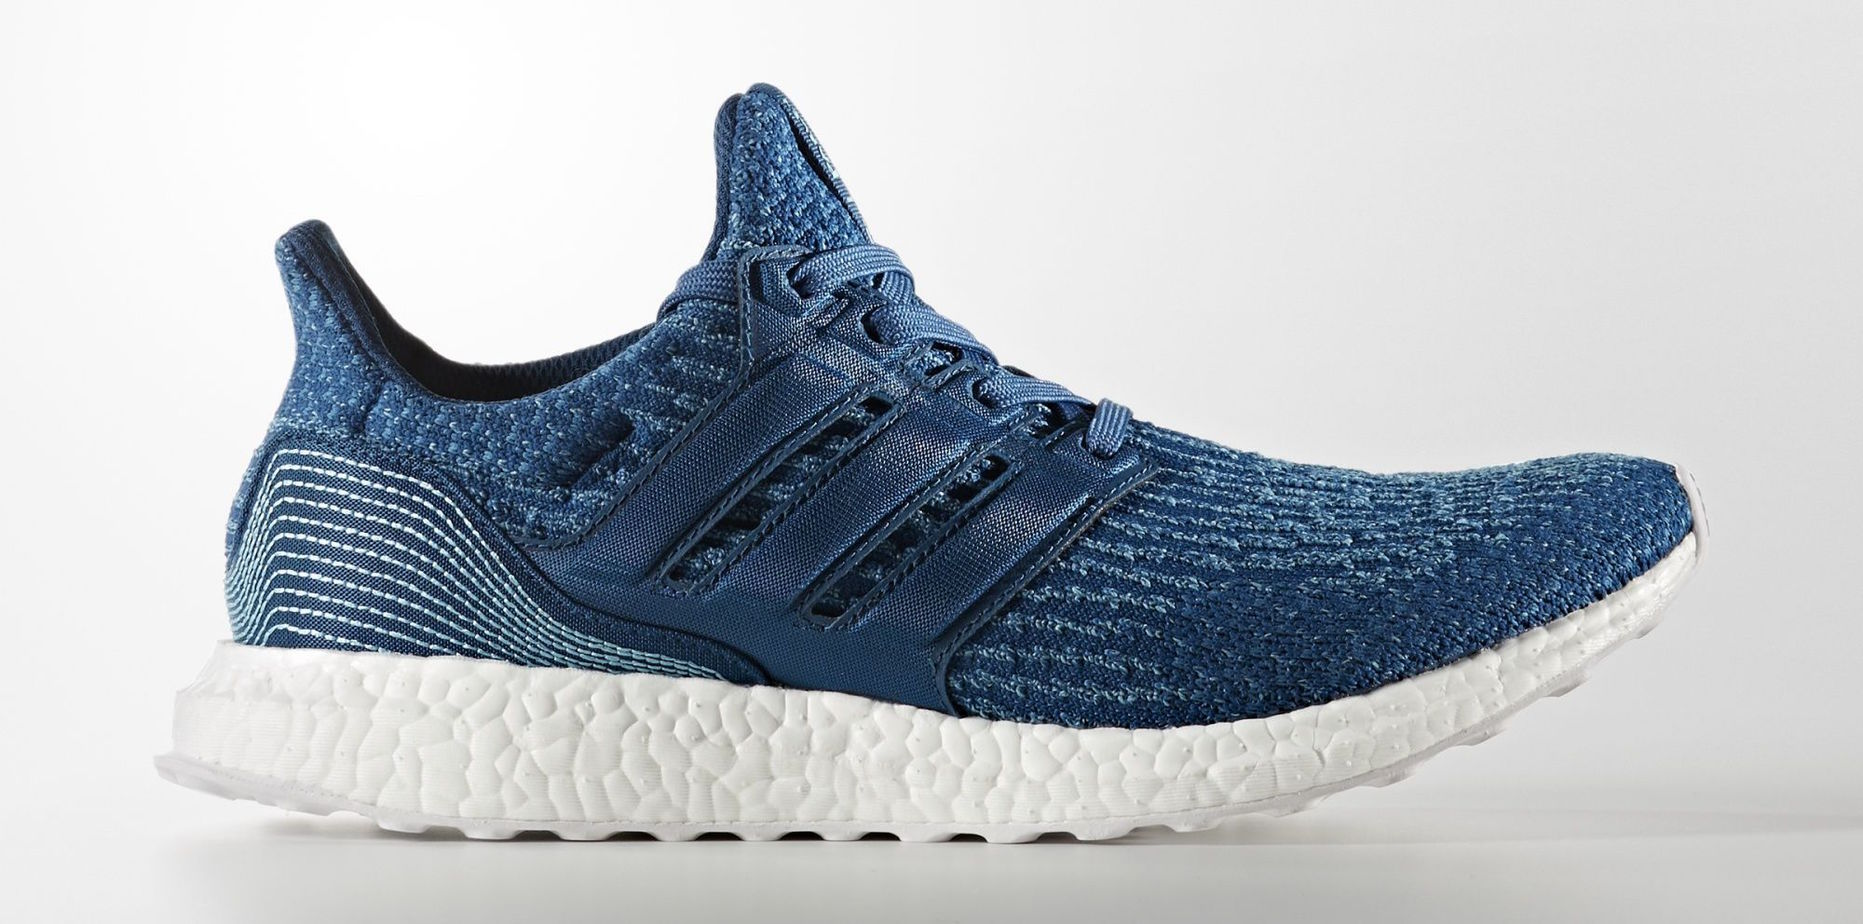 417d217b9 Parley x adidas Ultra Boost May 10th Release Links - JustFreshKicks